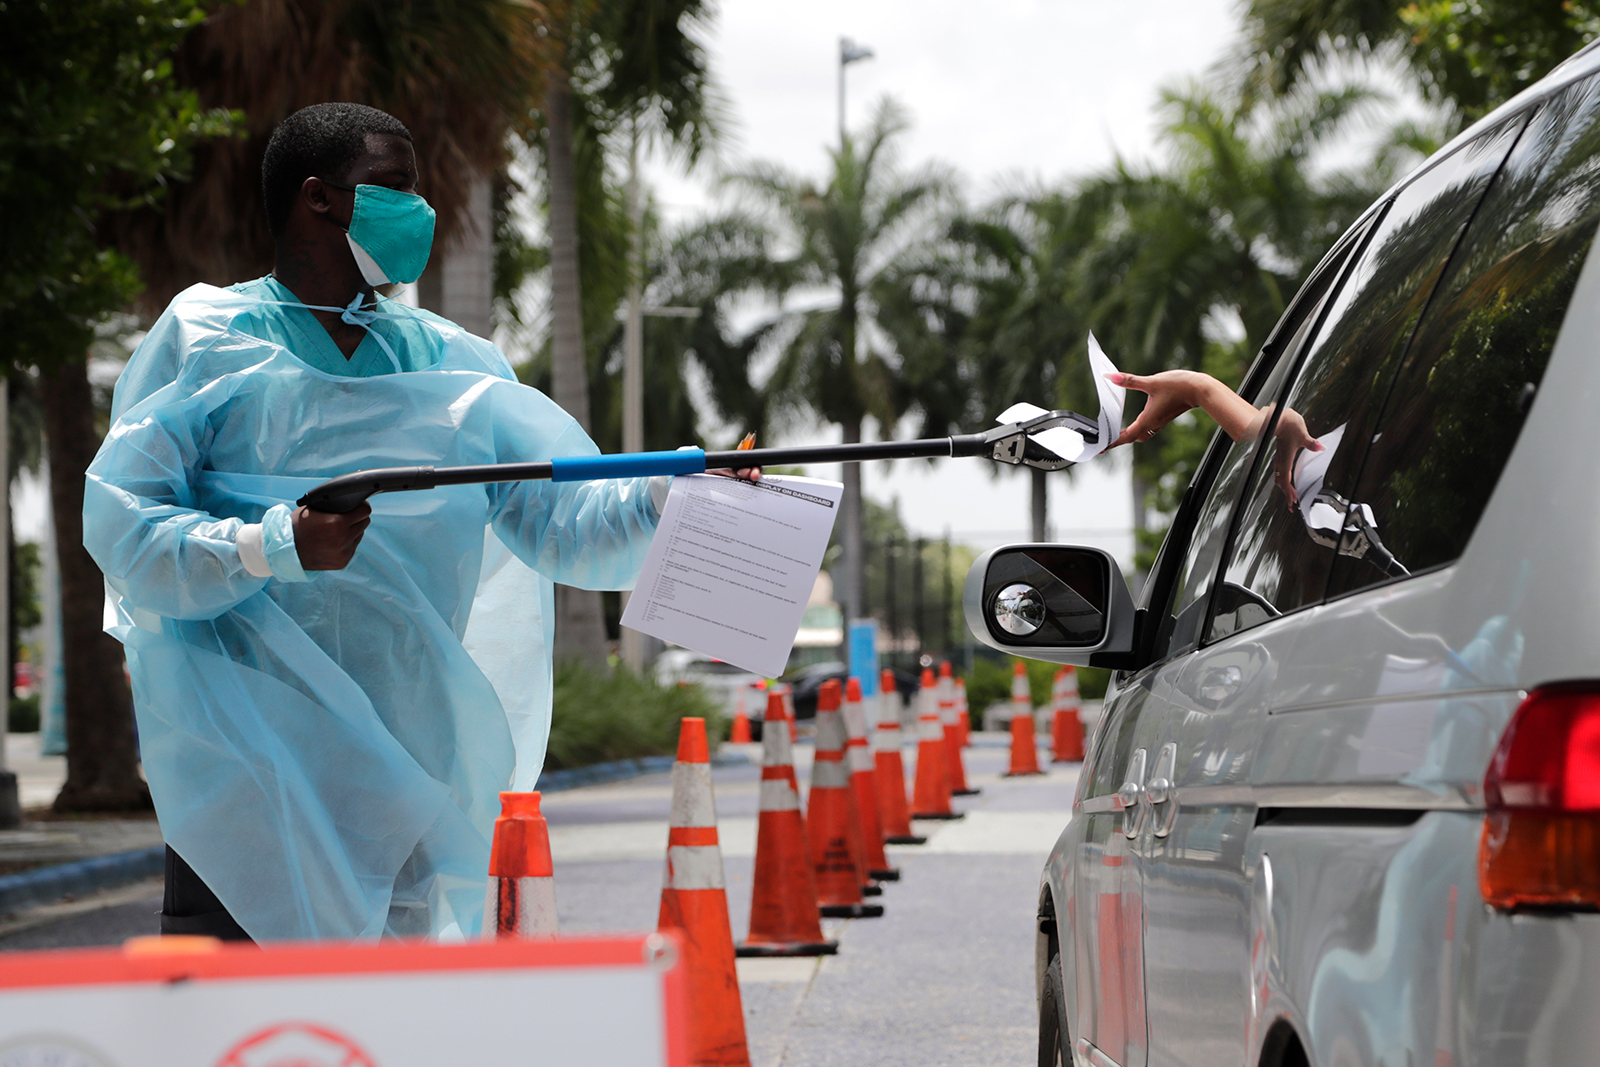 Healthcare worker Dante Hills, left, passes paperwork to a woman in a vehicle at a COVID-19 testing site outside of Marlins Park, Monday, July 27 in Miami.